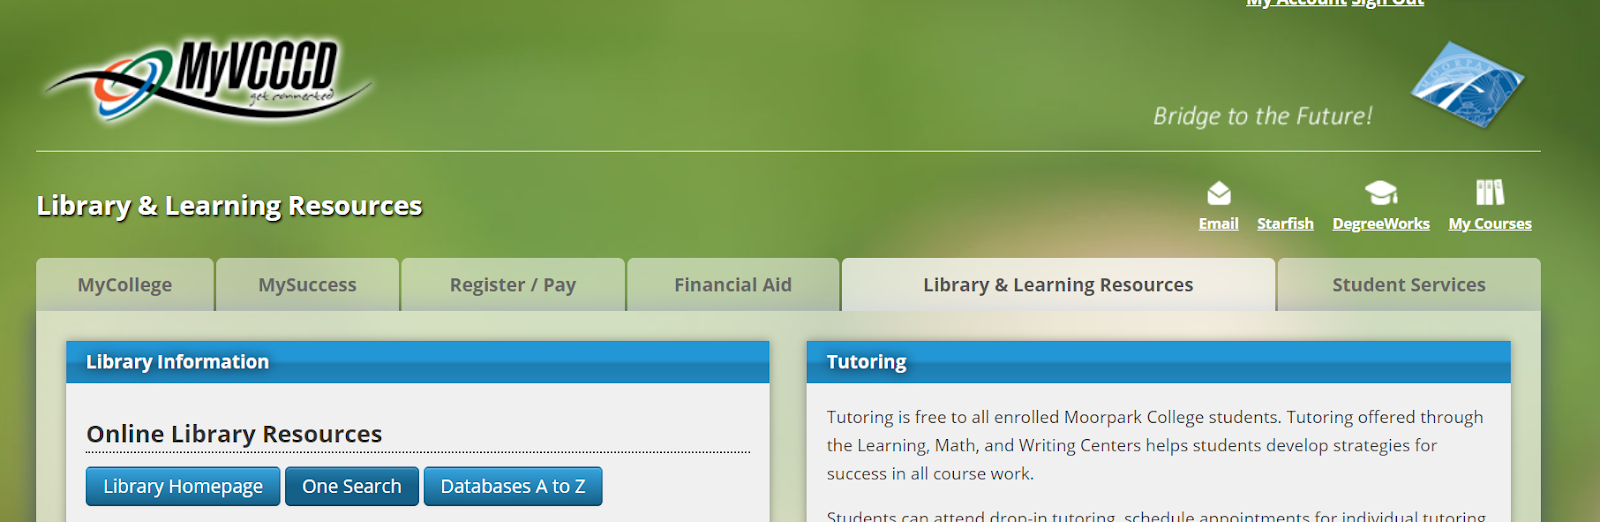 Once you've logged into your MyVCCCD portal, this is the page that comes up. Choose the Library and Learning Resources tab. Click on Databases A to Z if you already know the name of the database you would like to use. If you do not, please click on Library Homepage or One Search instead.